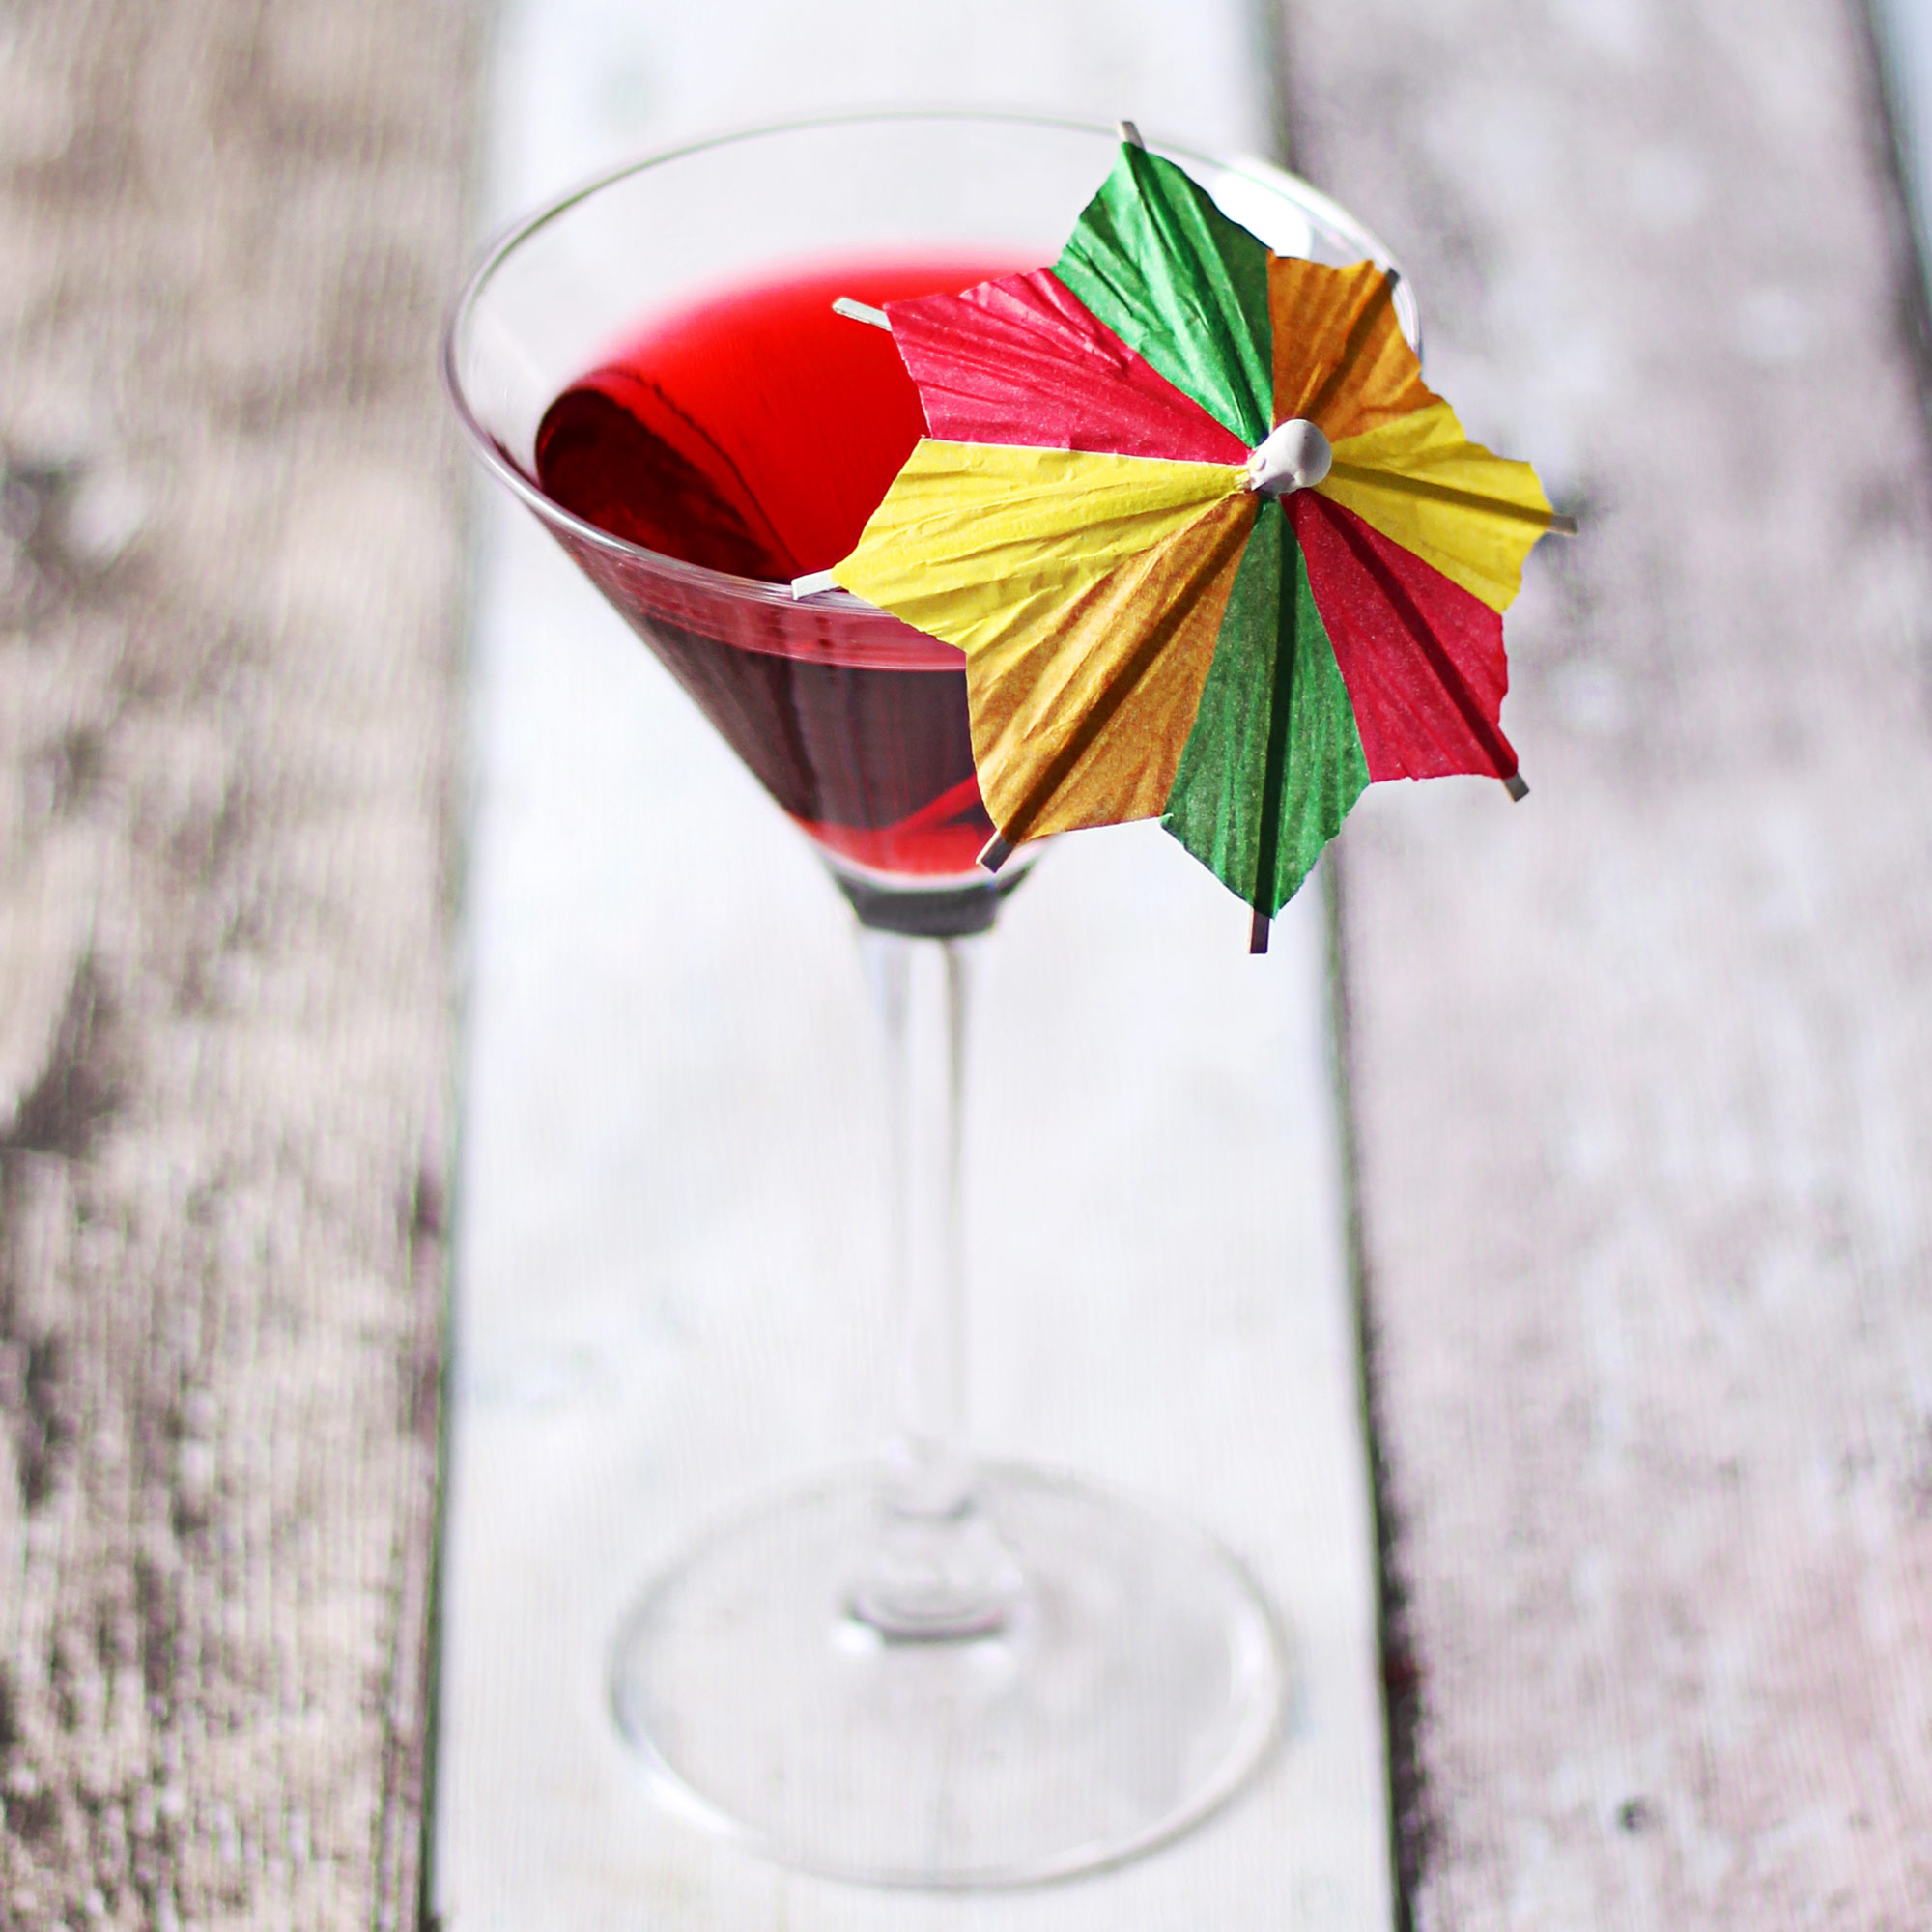 paper umbrellas for drinks More: 10 spring break-ready drinks that would look really good with a paper umbrella in them paper drink umbrellas, miraculously, are a great way of celebrating both the spirit of spring break .